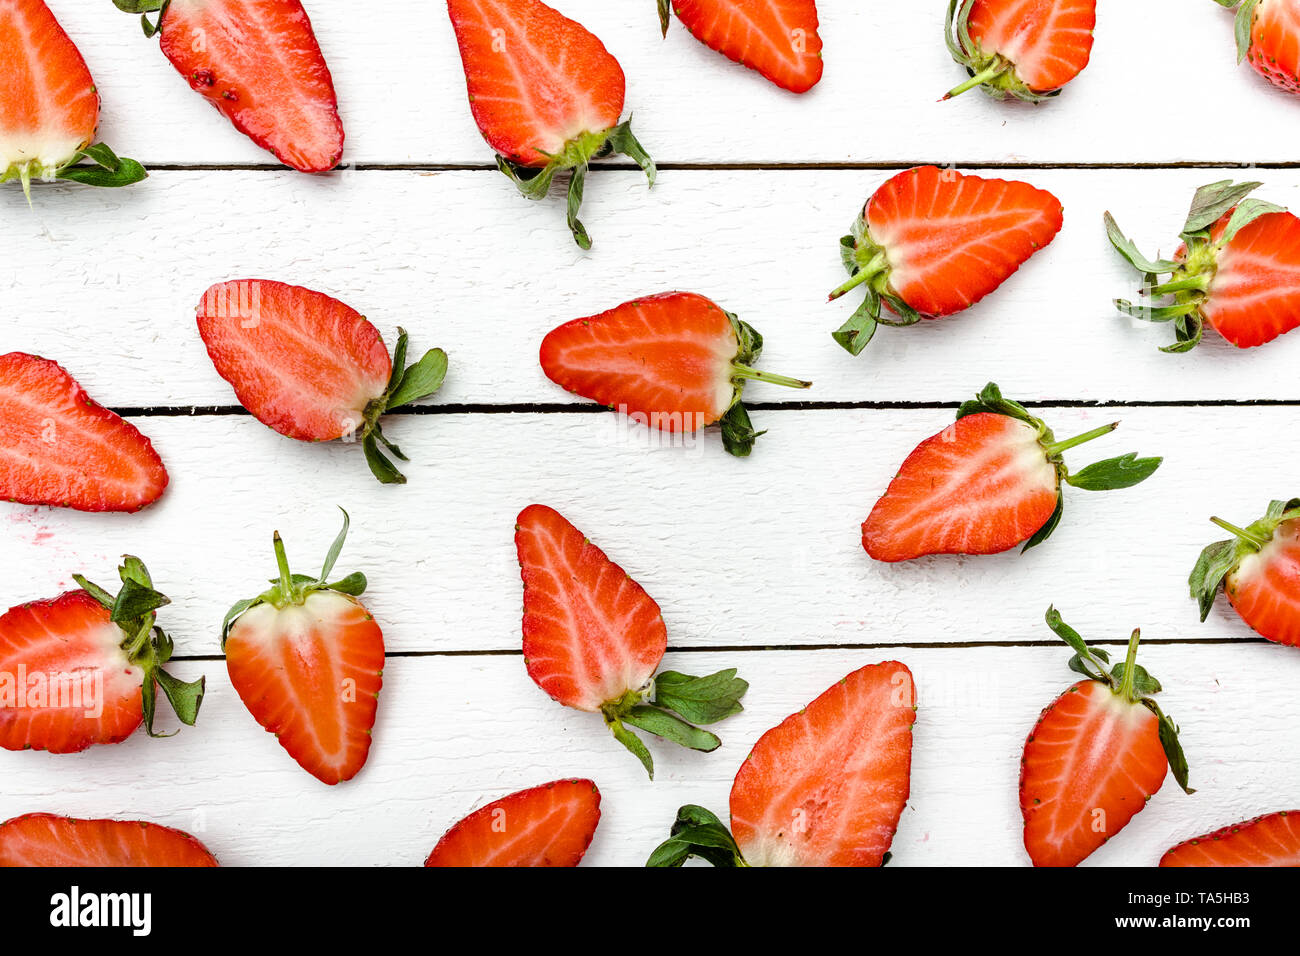 Fresh strawberries pattern. Texture of strawberry slices on white wooden background, food flat lay. - Stock Image